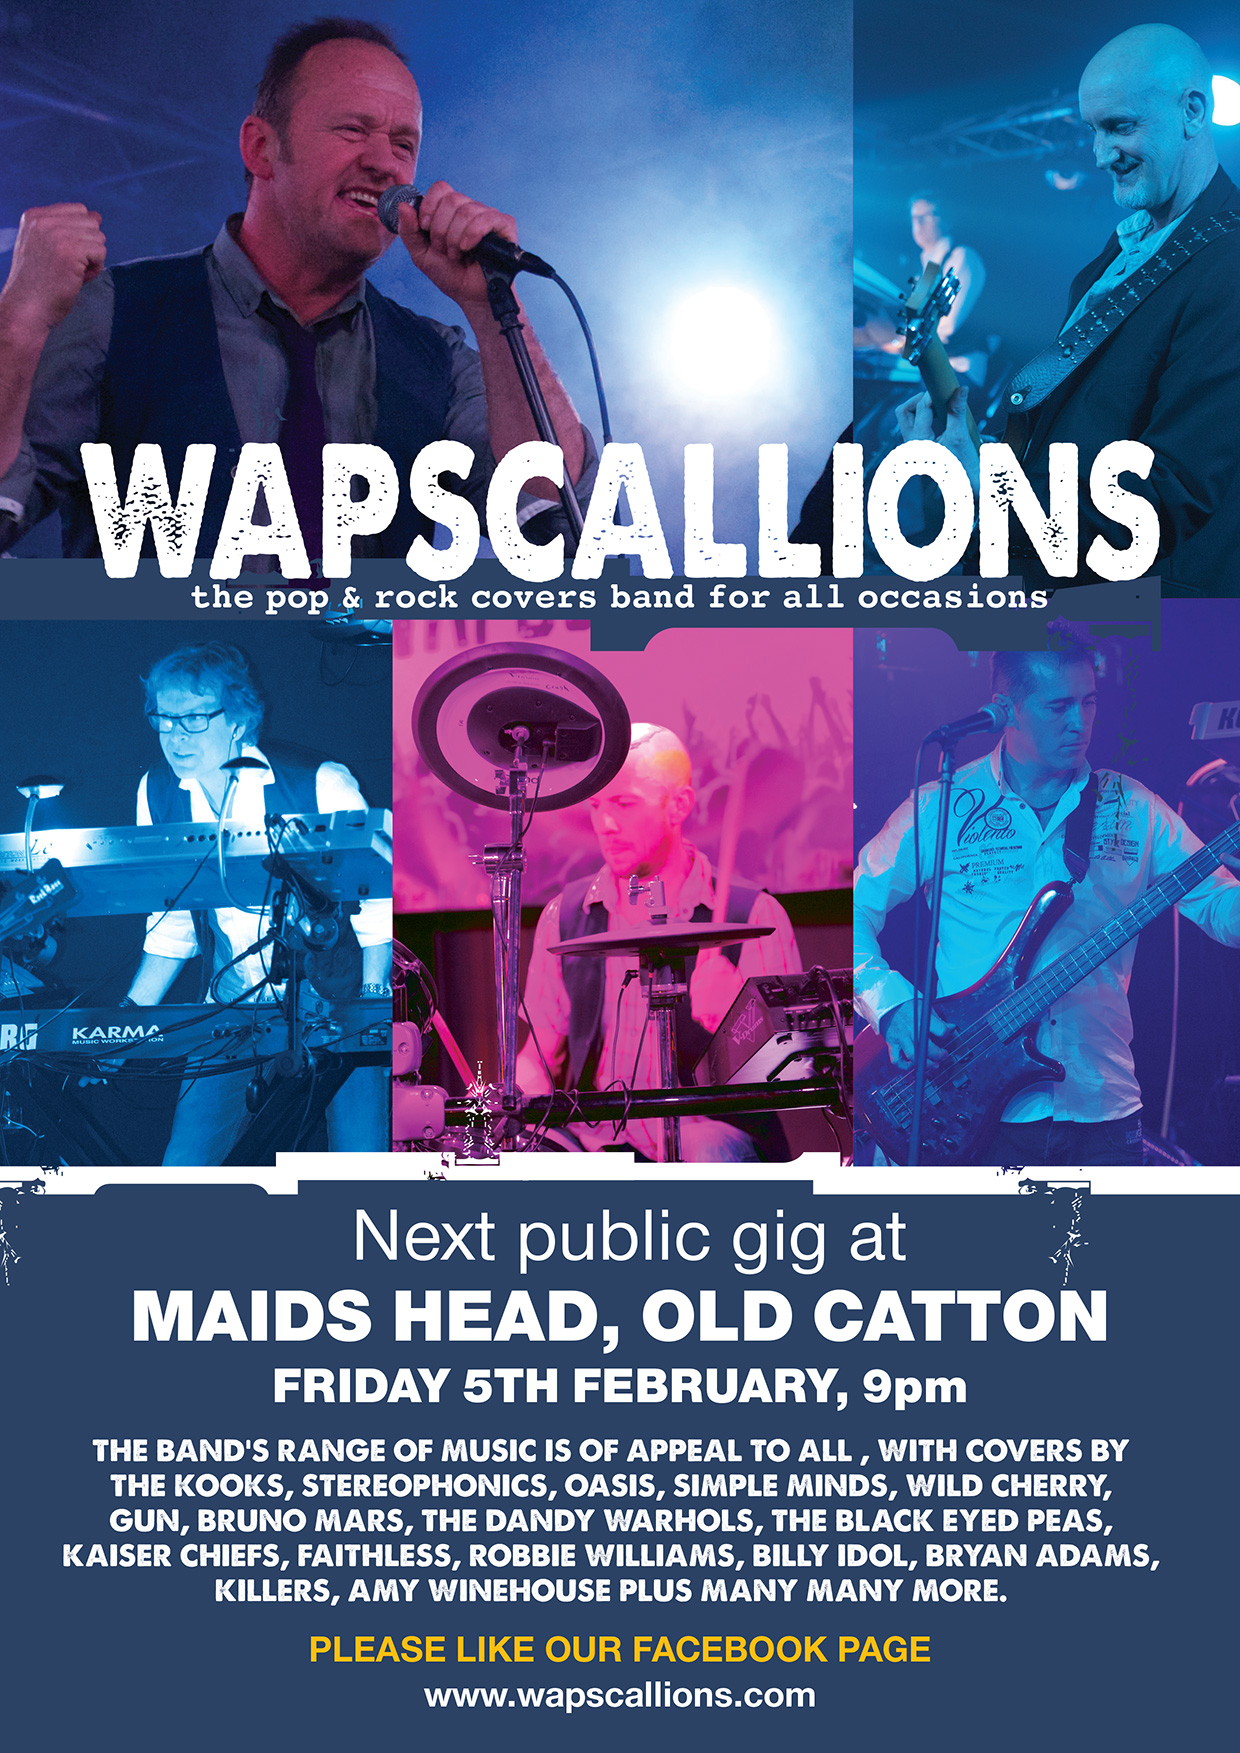 wapscallions gig Maids Head Old Catton 5th February 2016